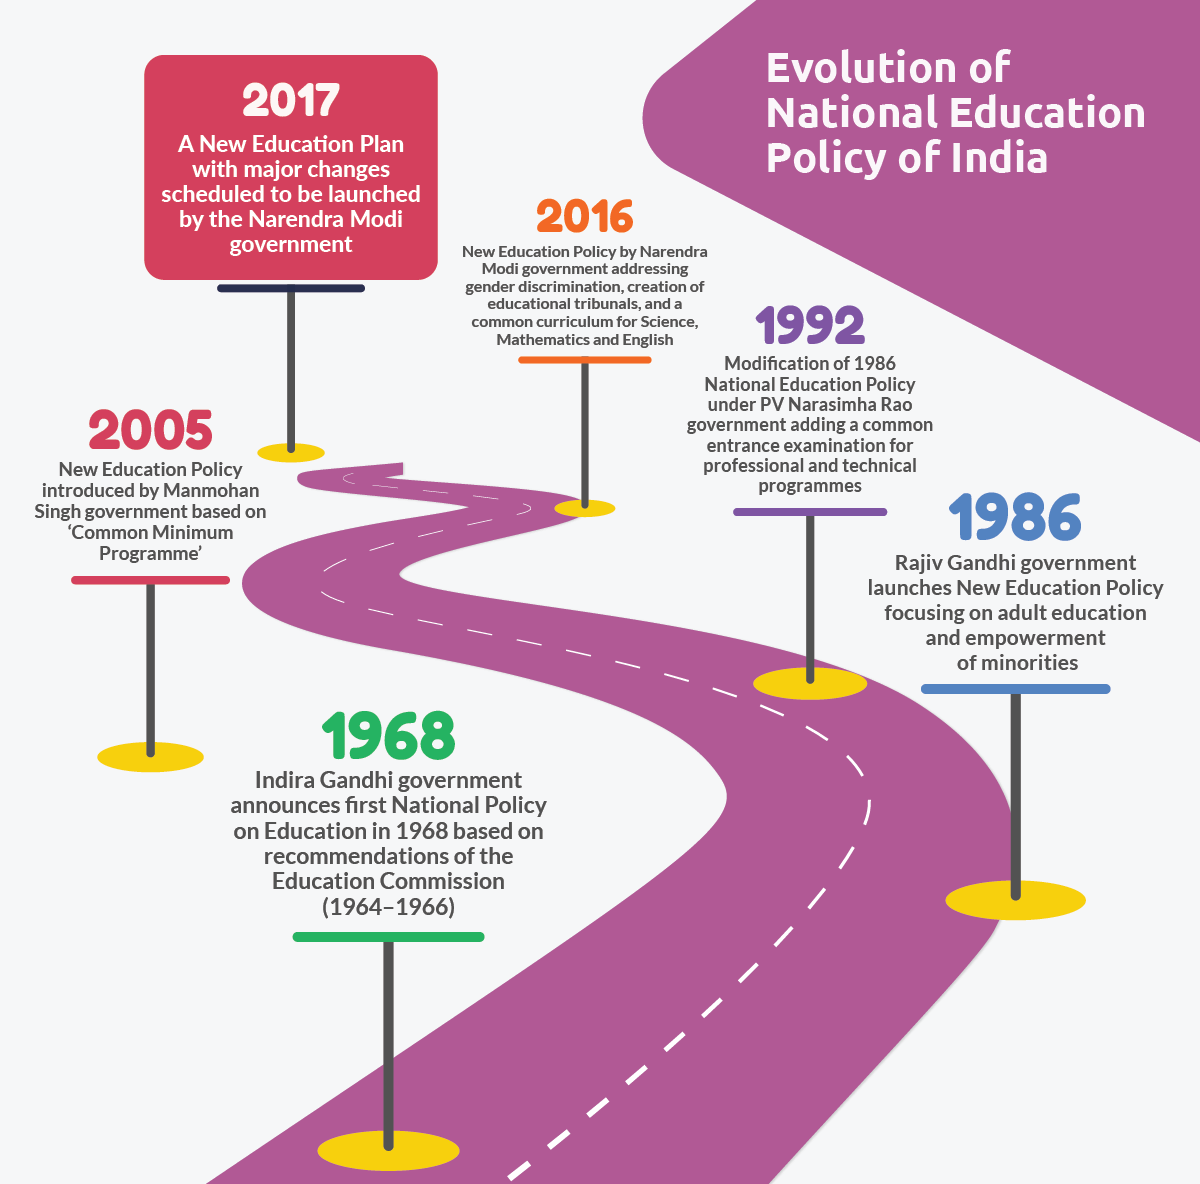 Evolution of National Education Policy in India